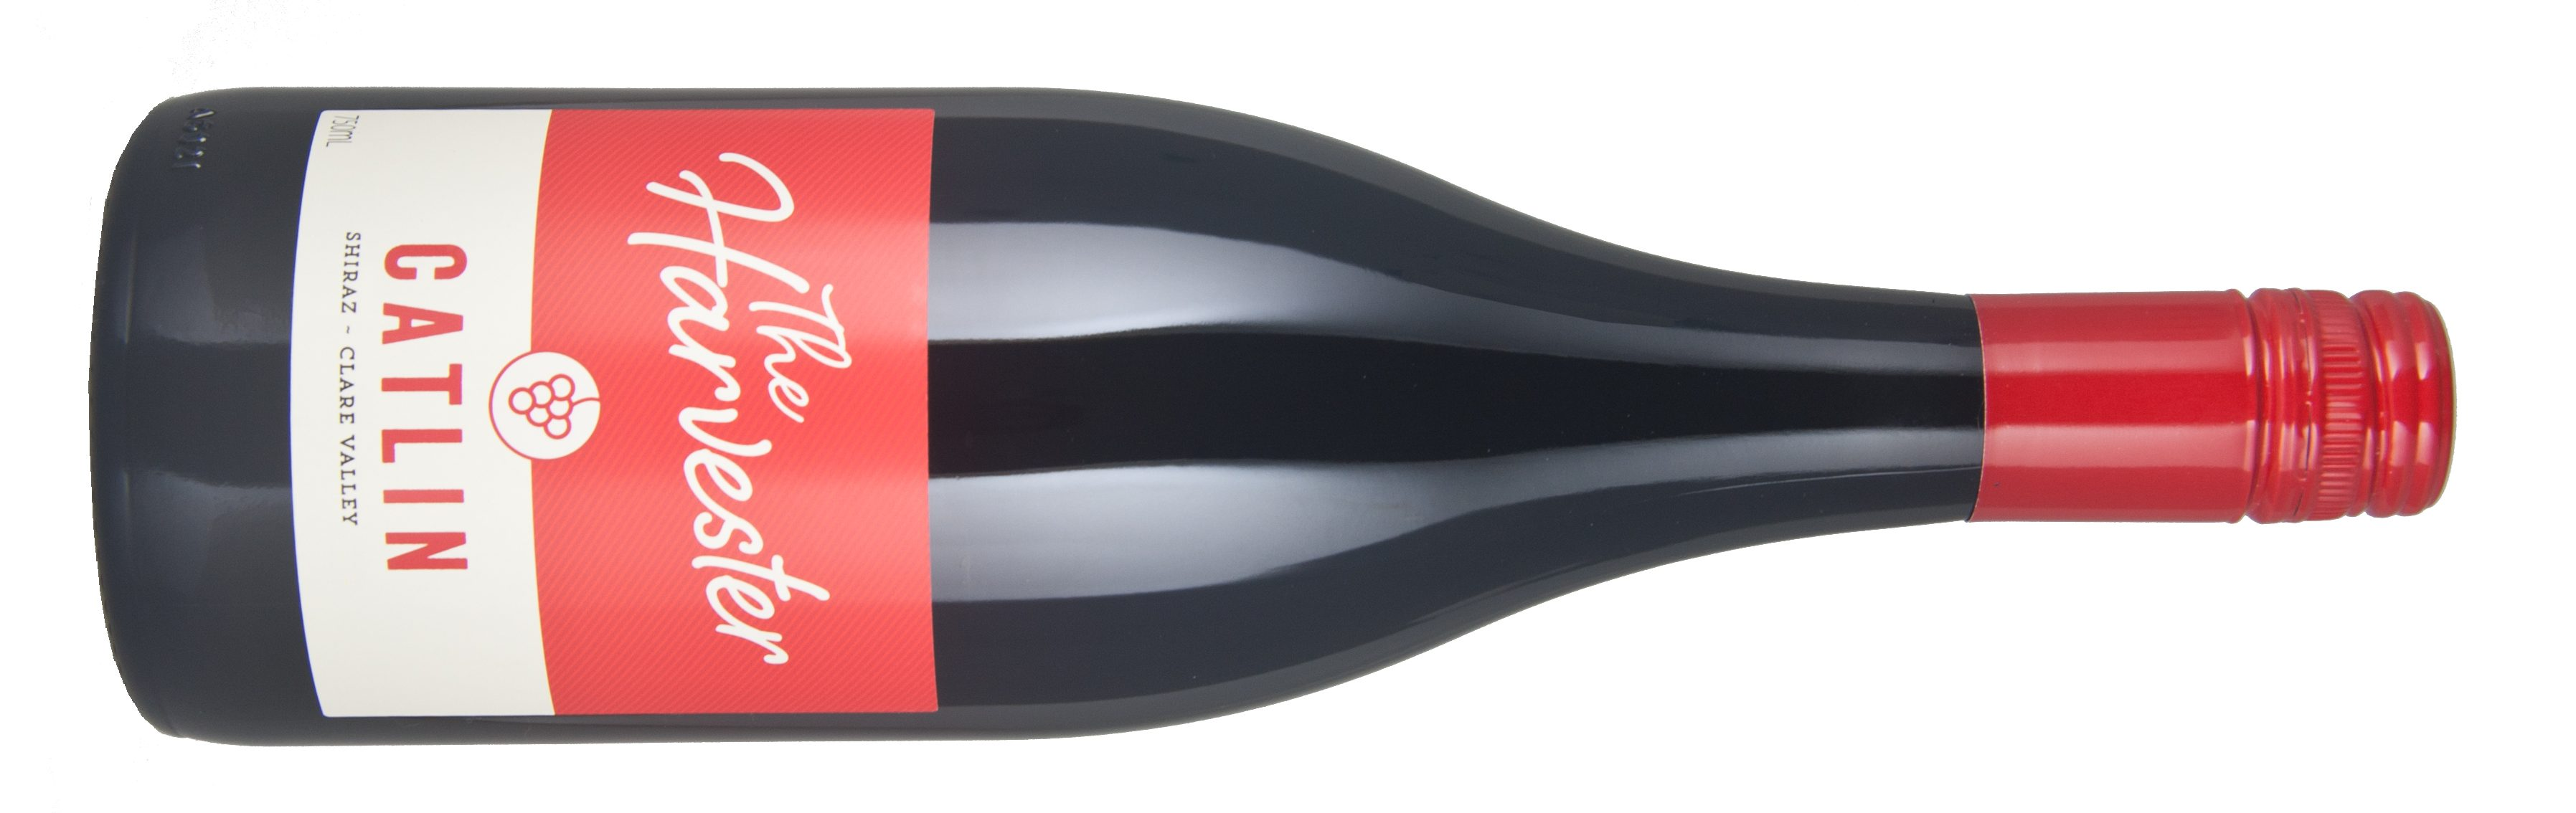 2016 The Harvester Shiraz